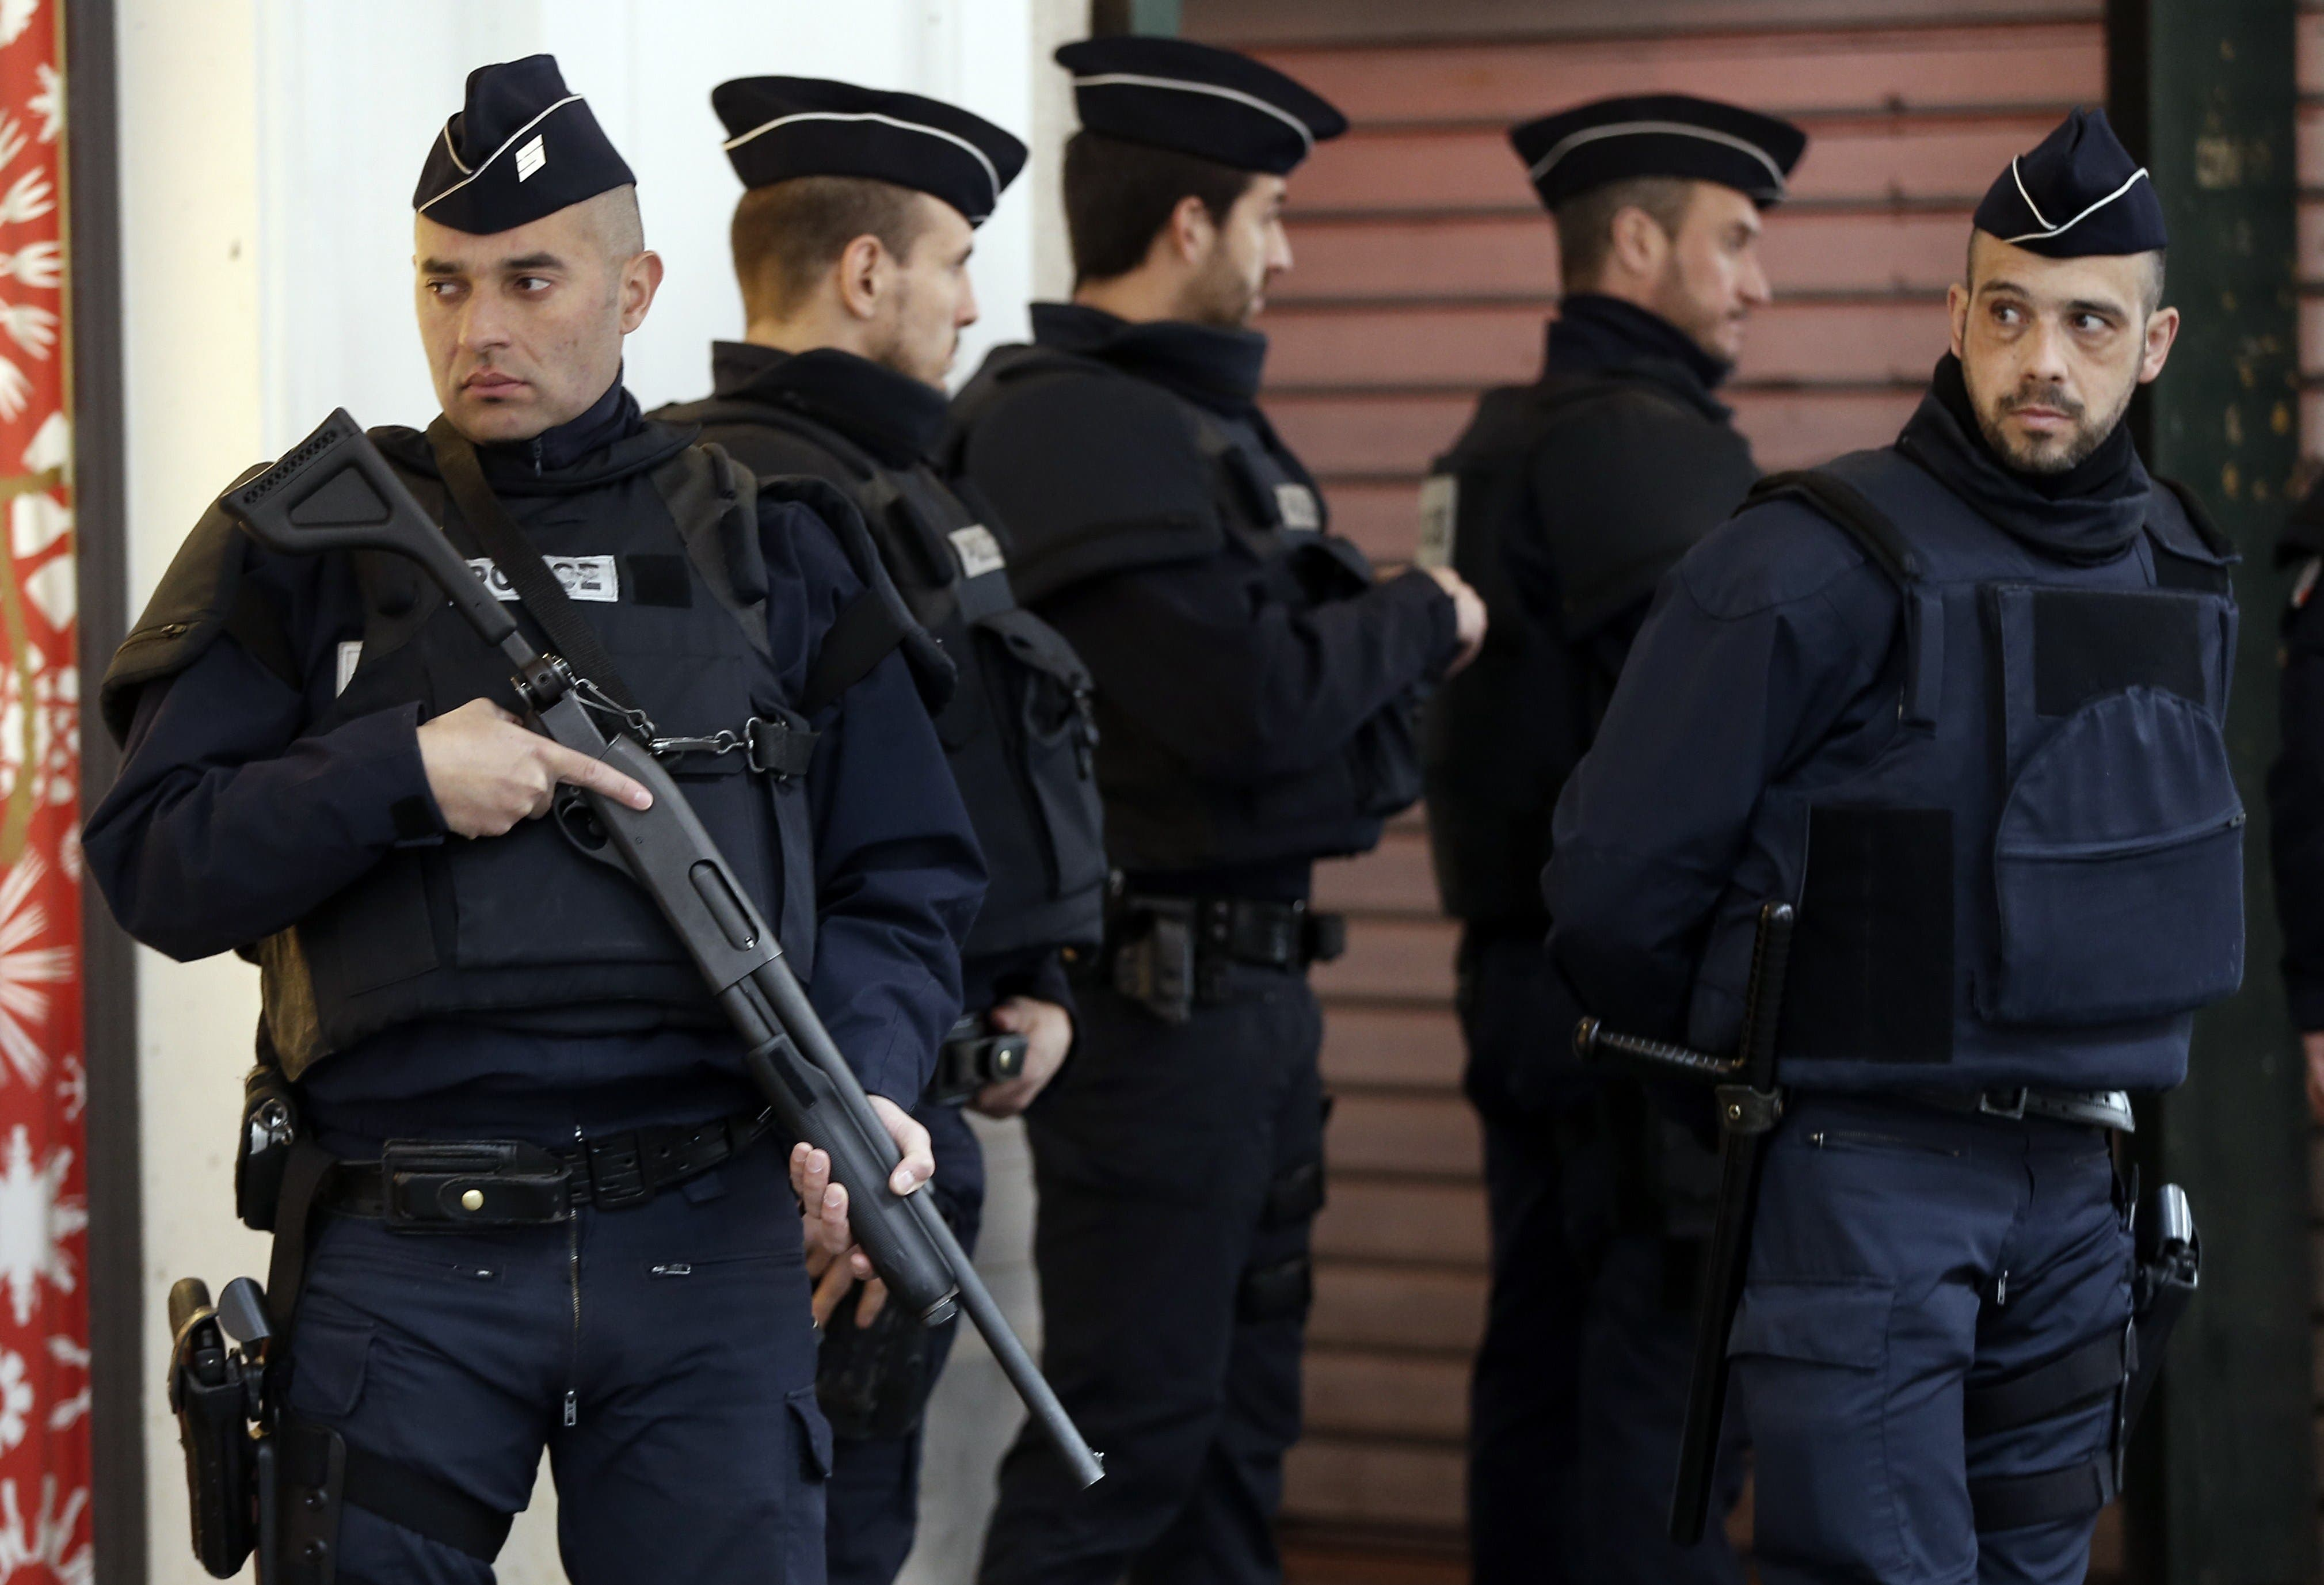 French Military to Replace the FAMAS - FrenchCrazy |French Famas Police